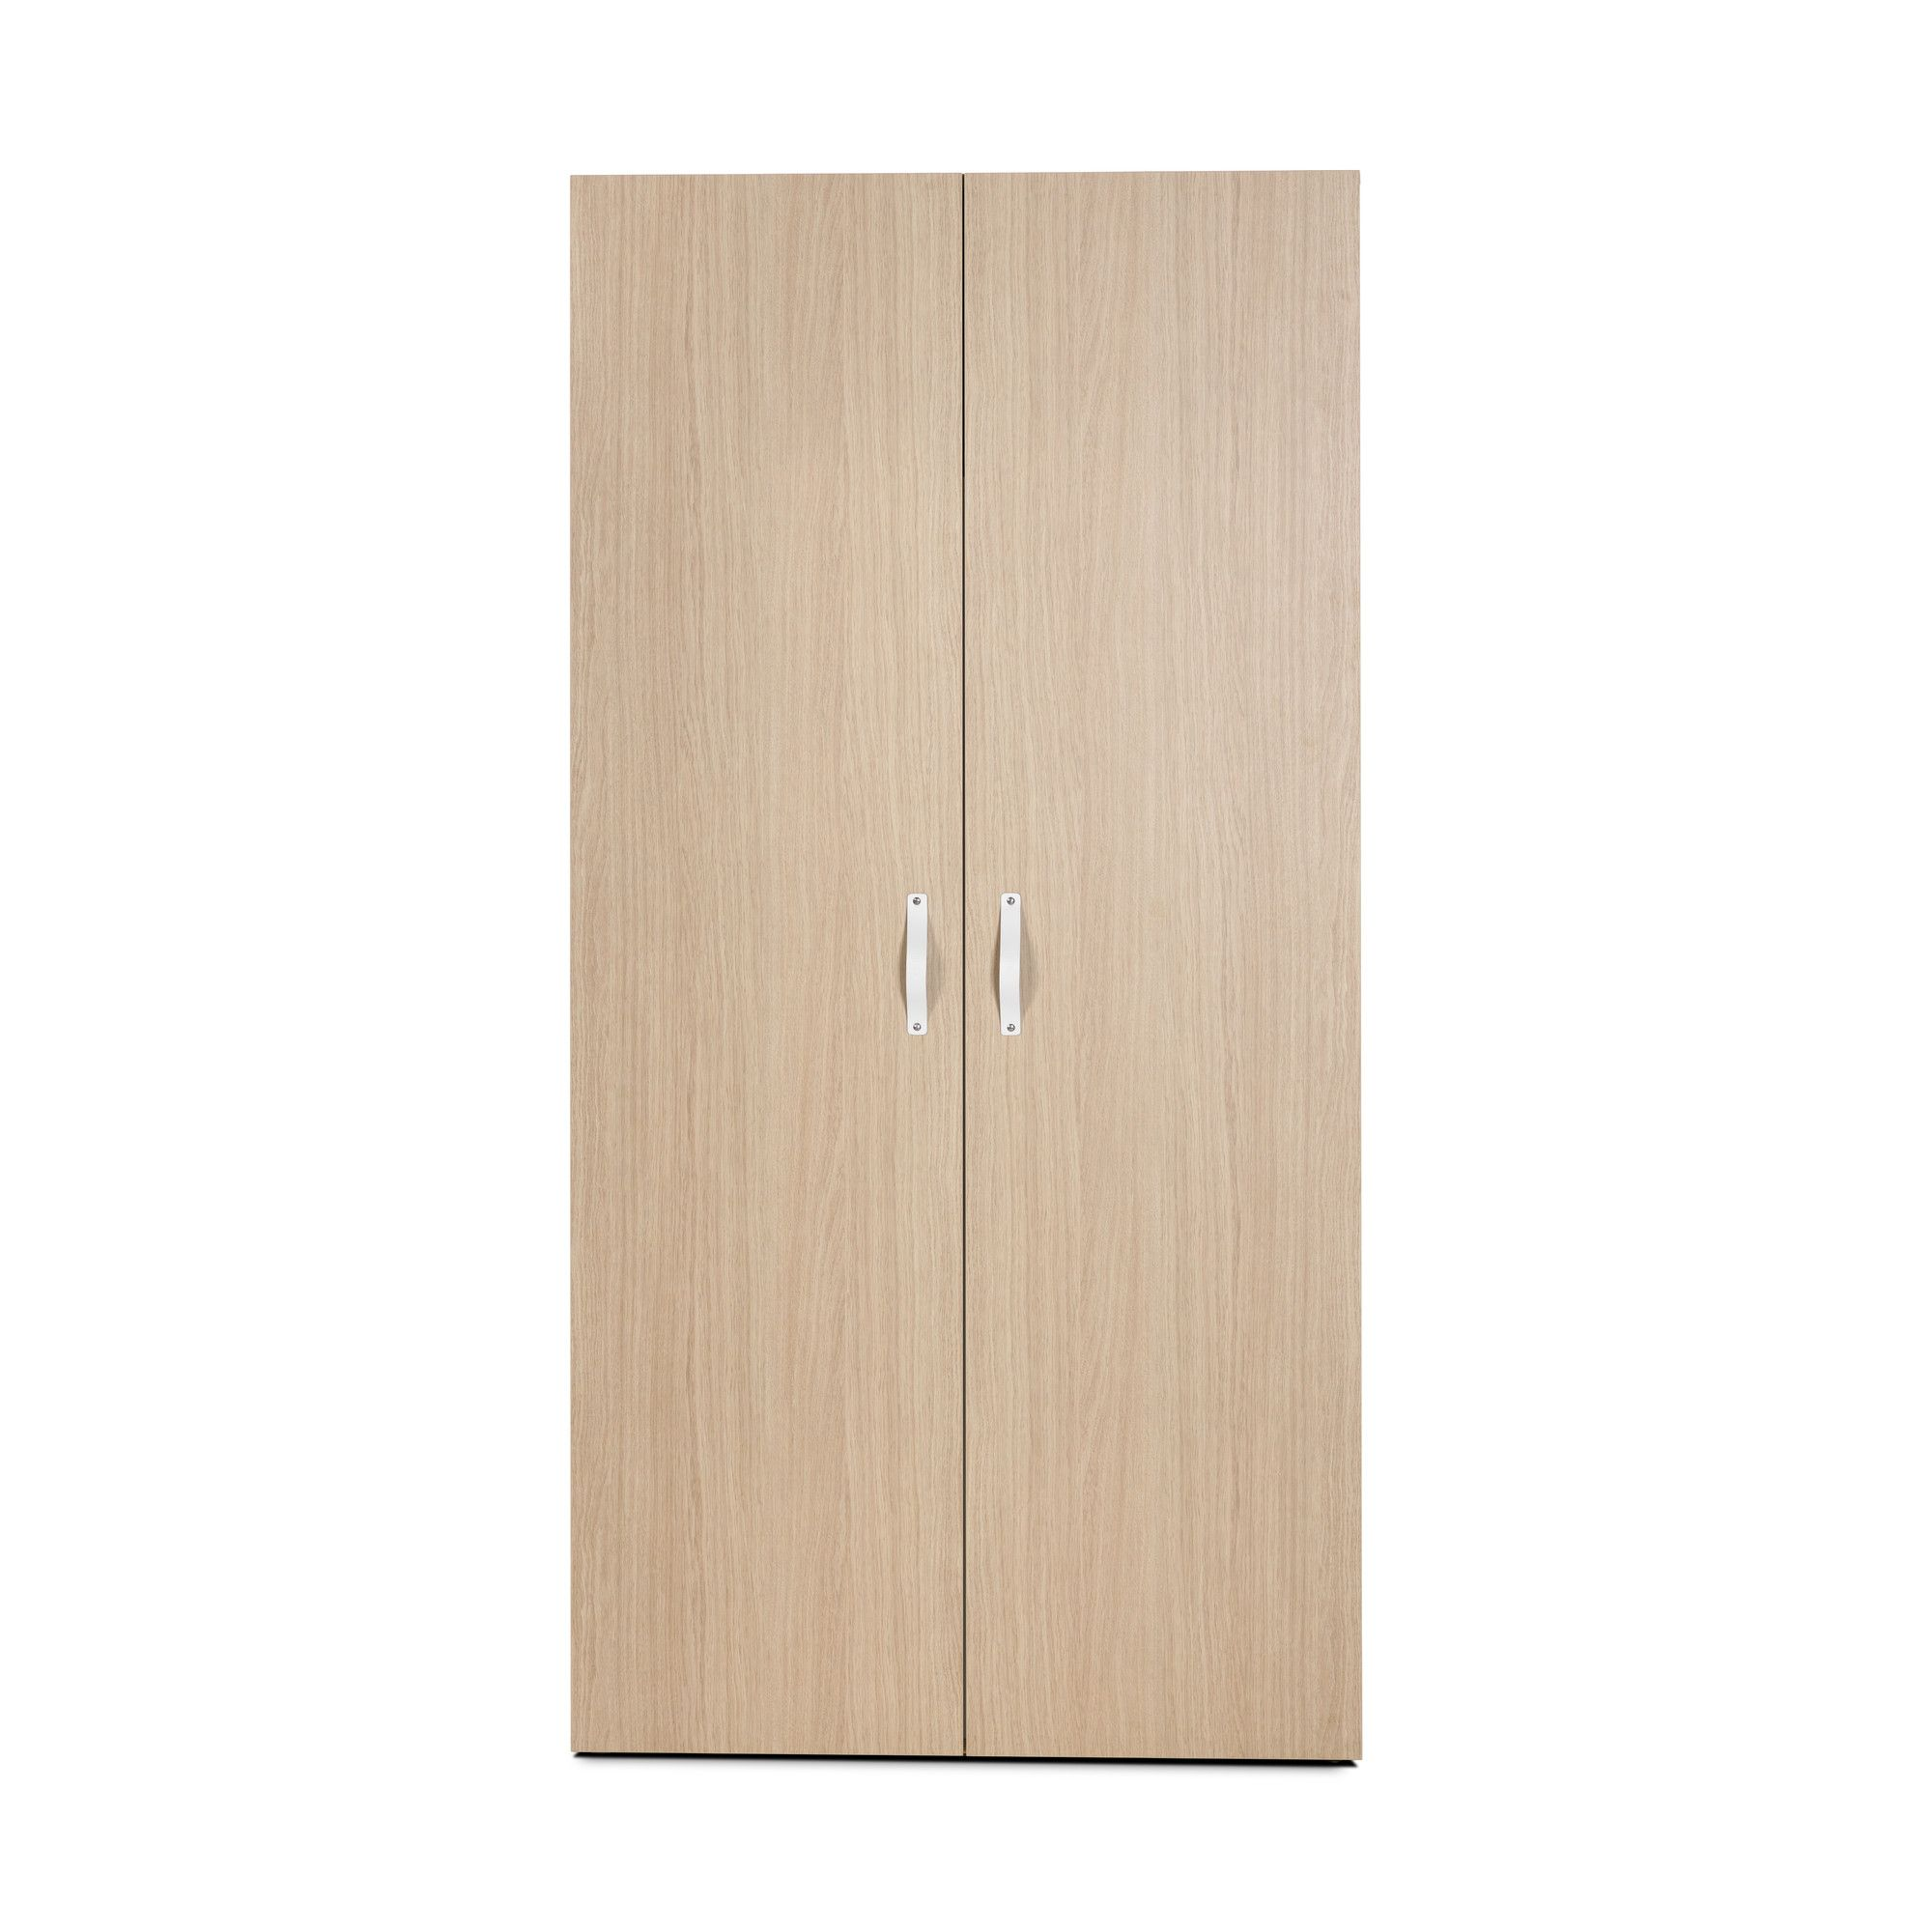 Didit Wardrobe - Essential Oak Light at Tesco Direct